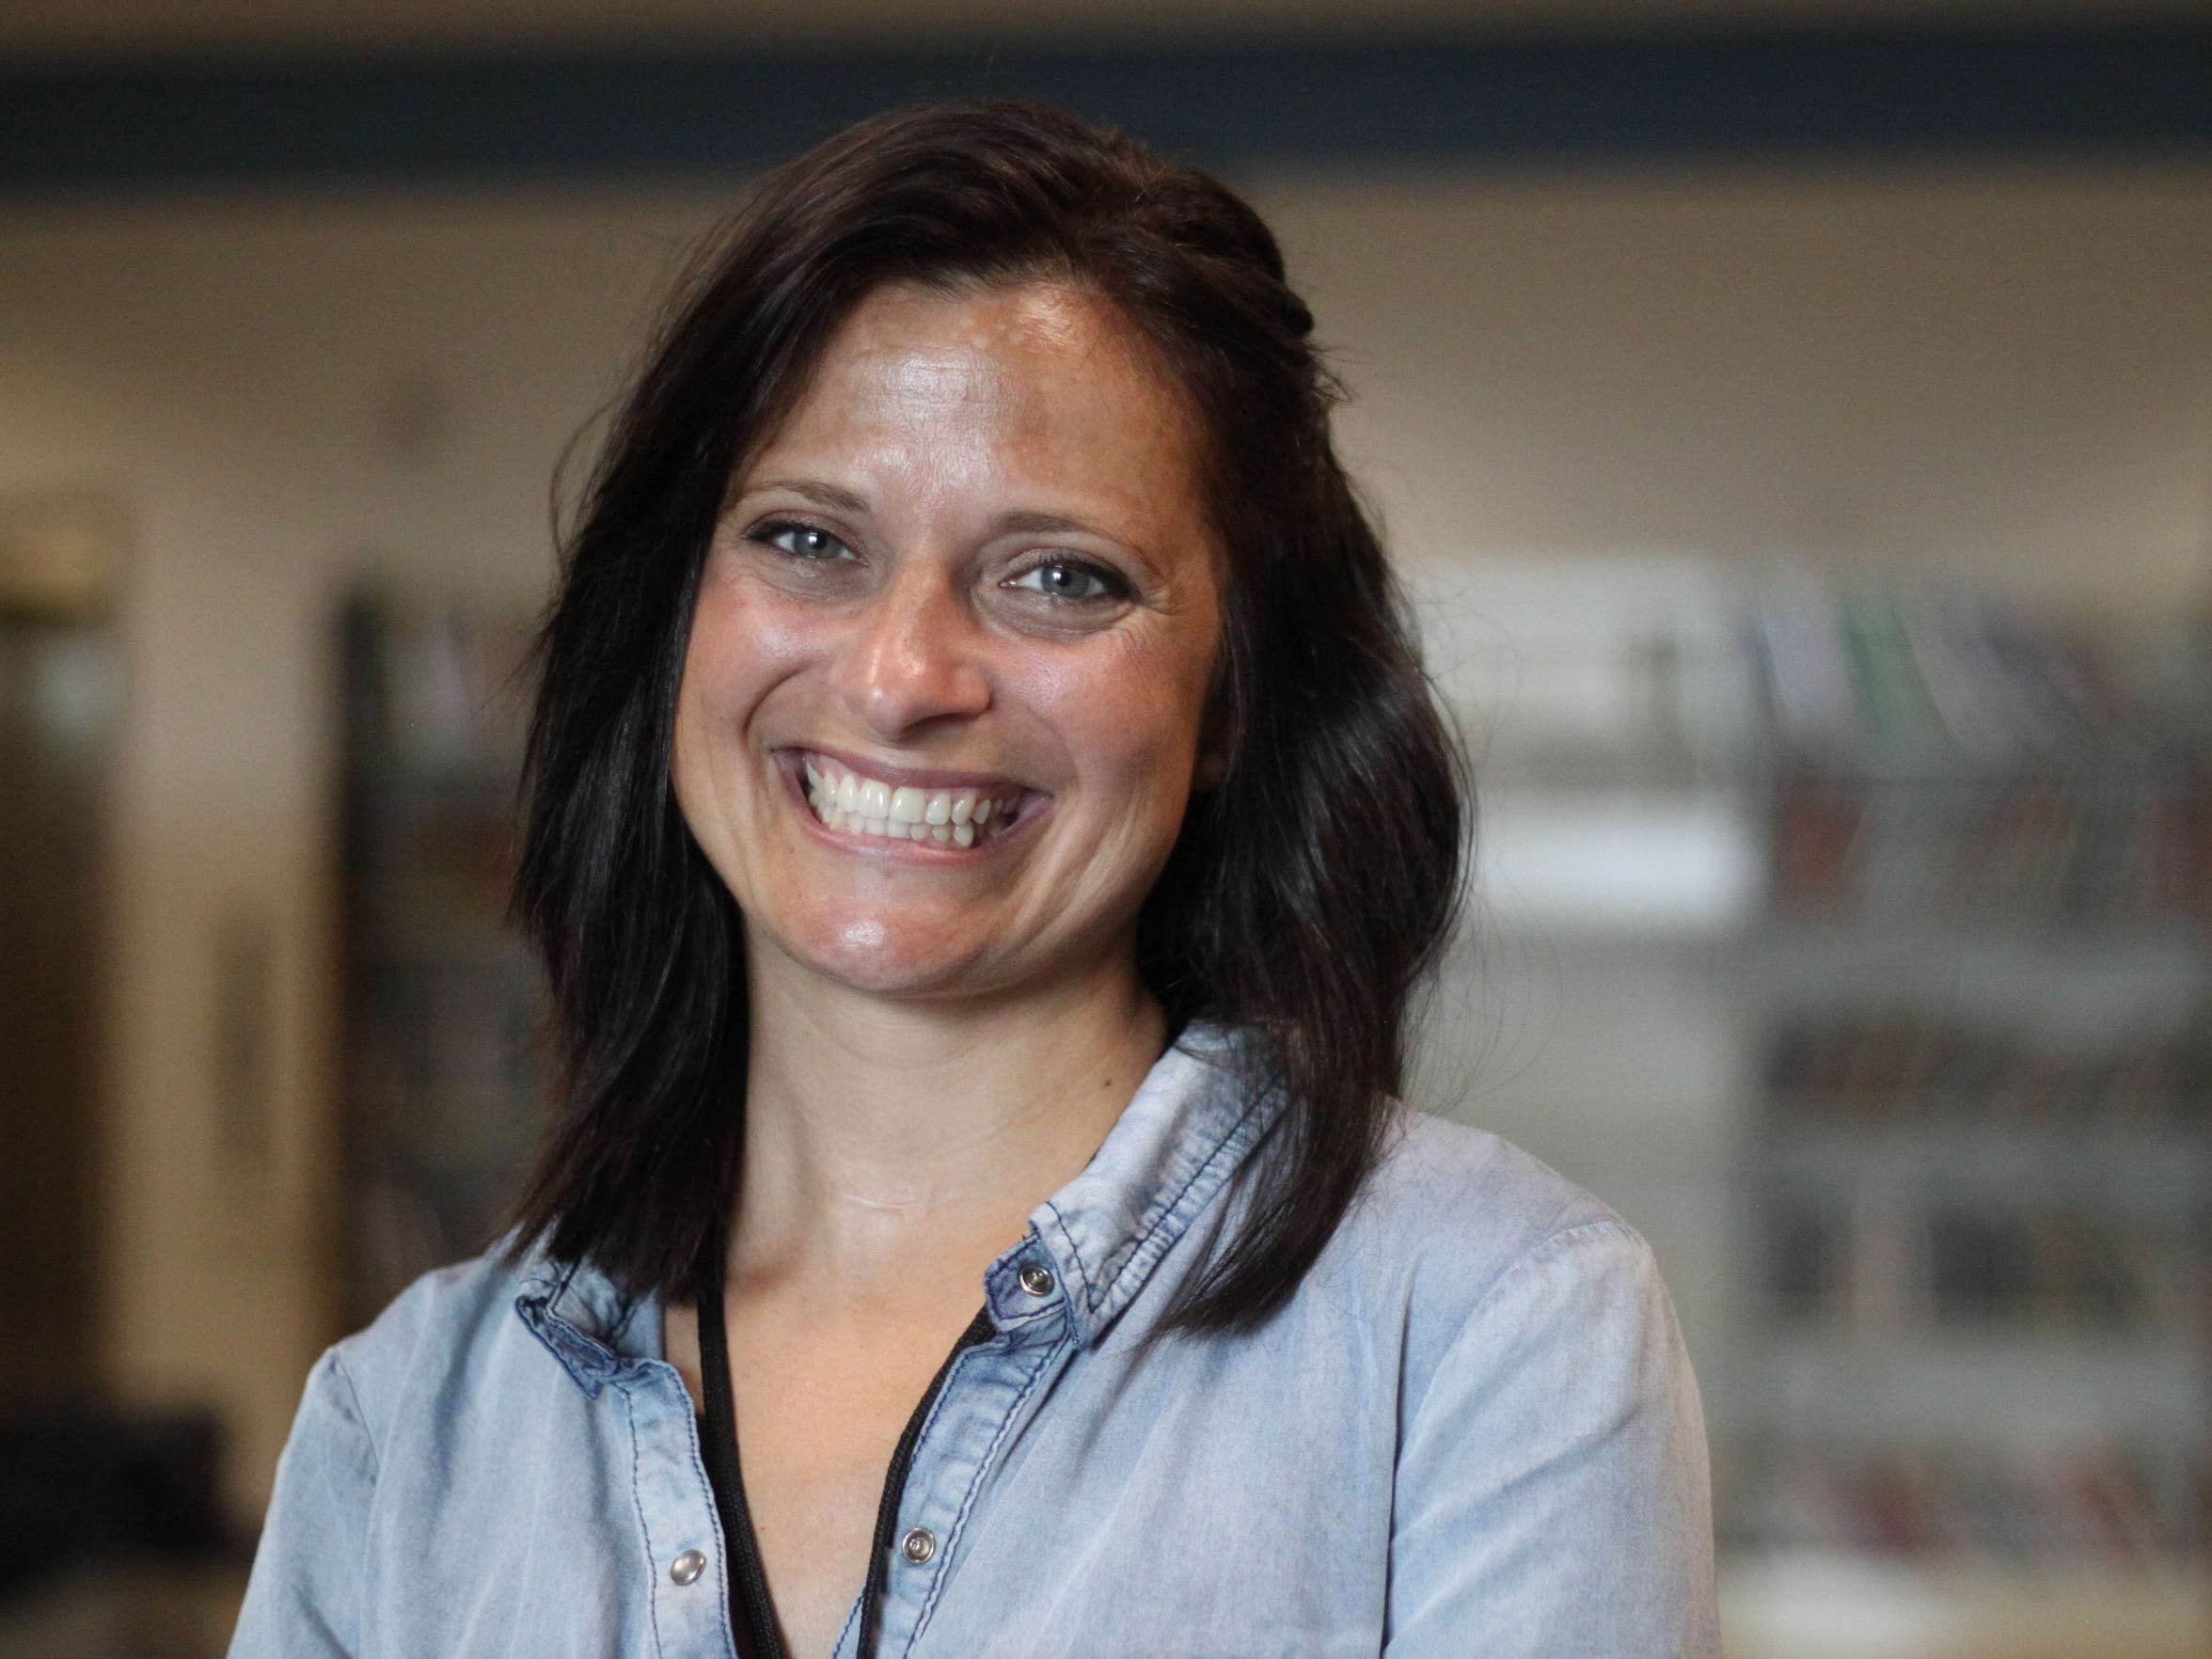 Erin Kernohan is a reading specialist at Midway Elementary